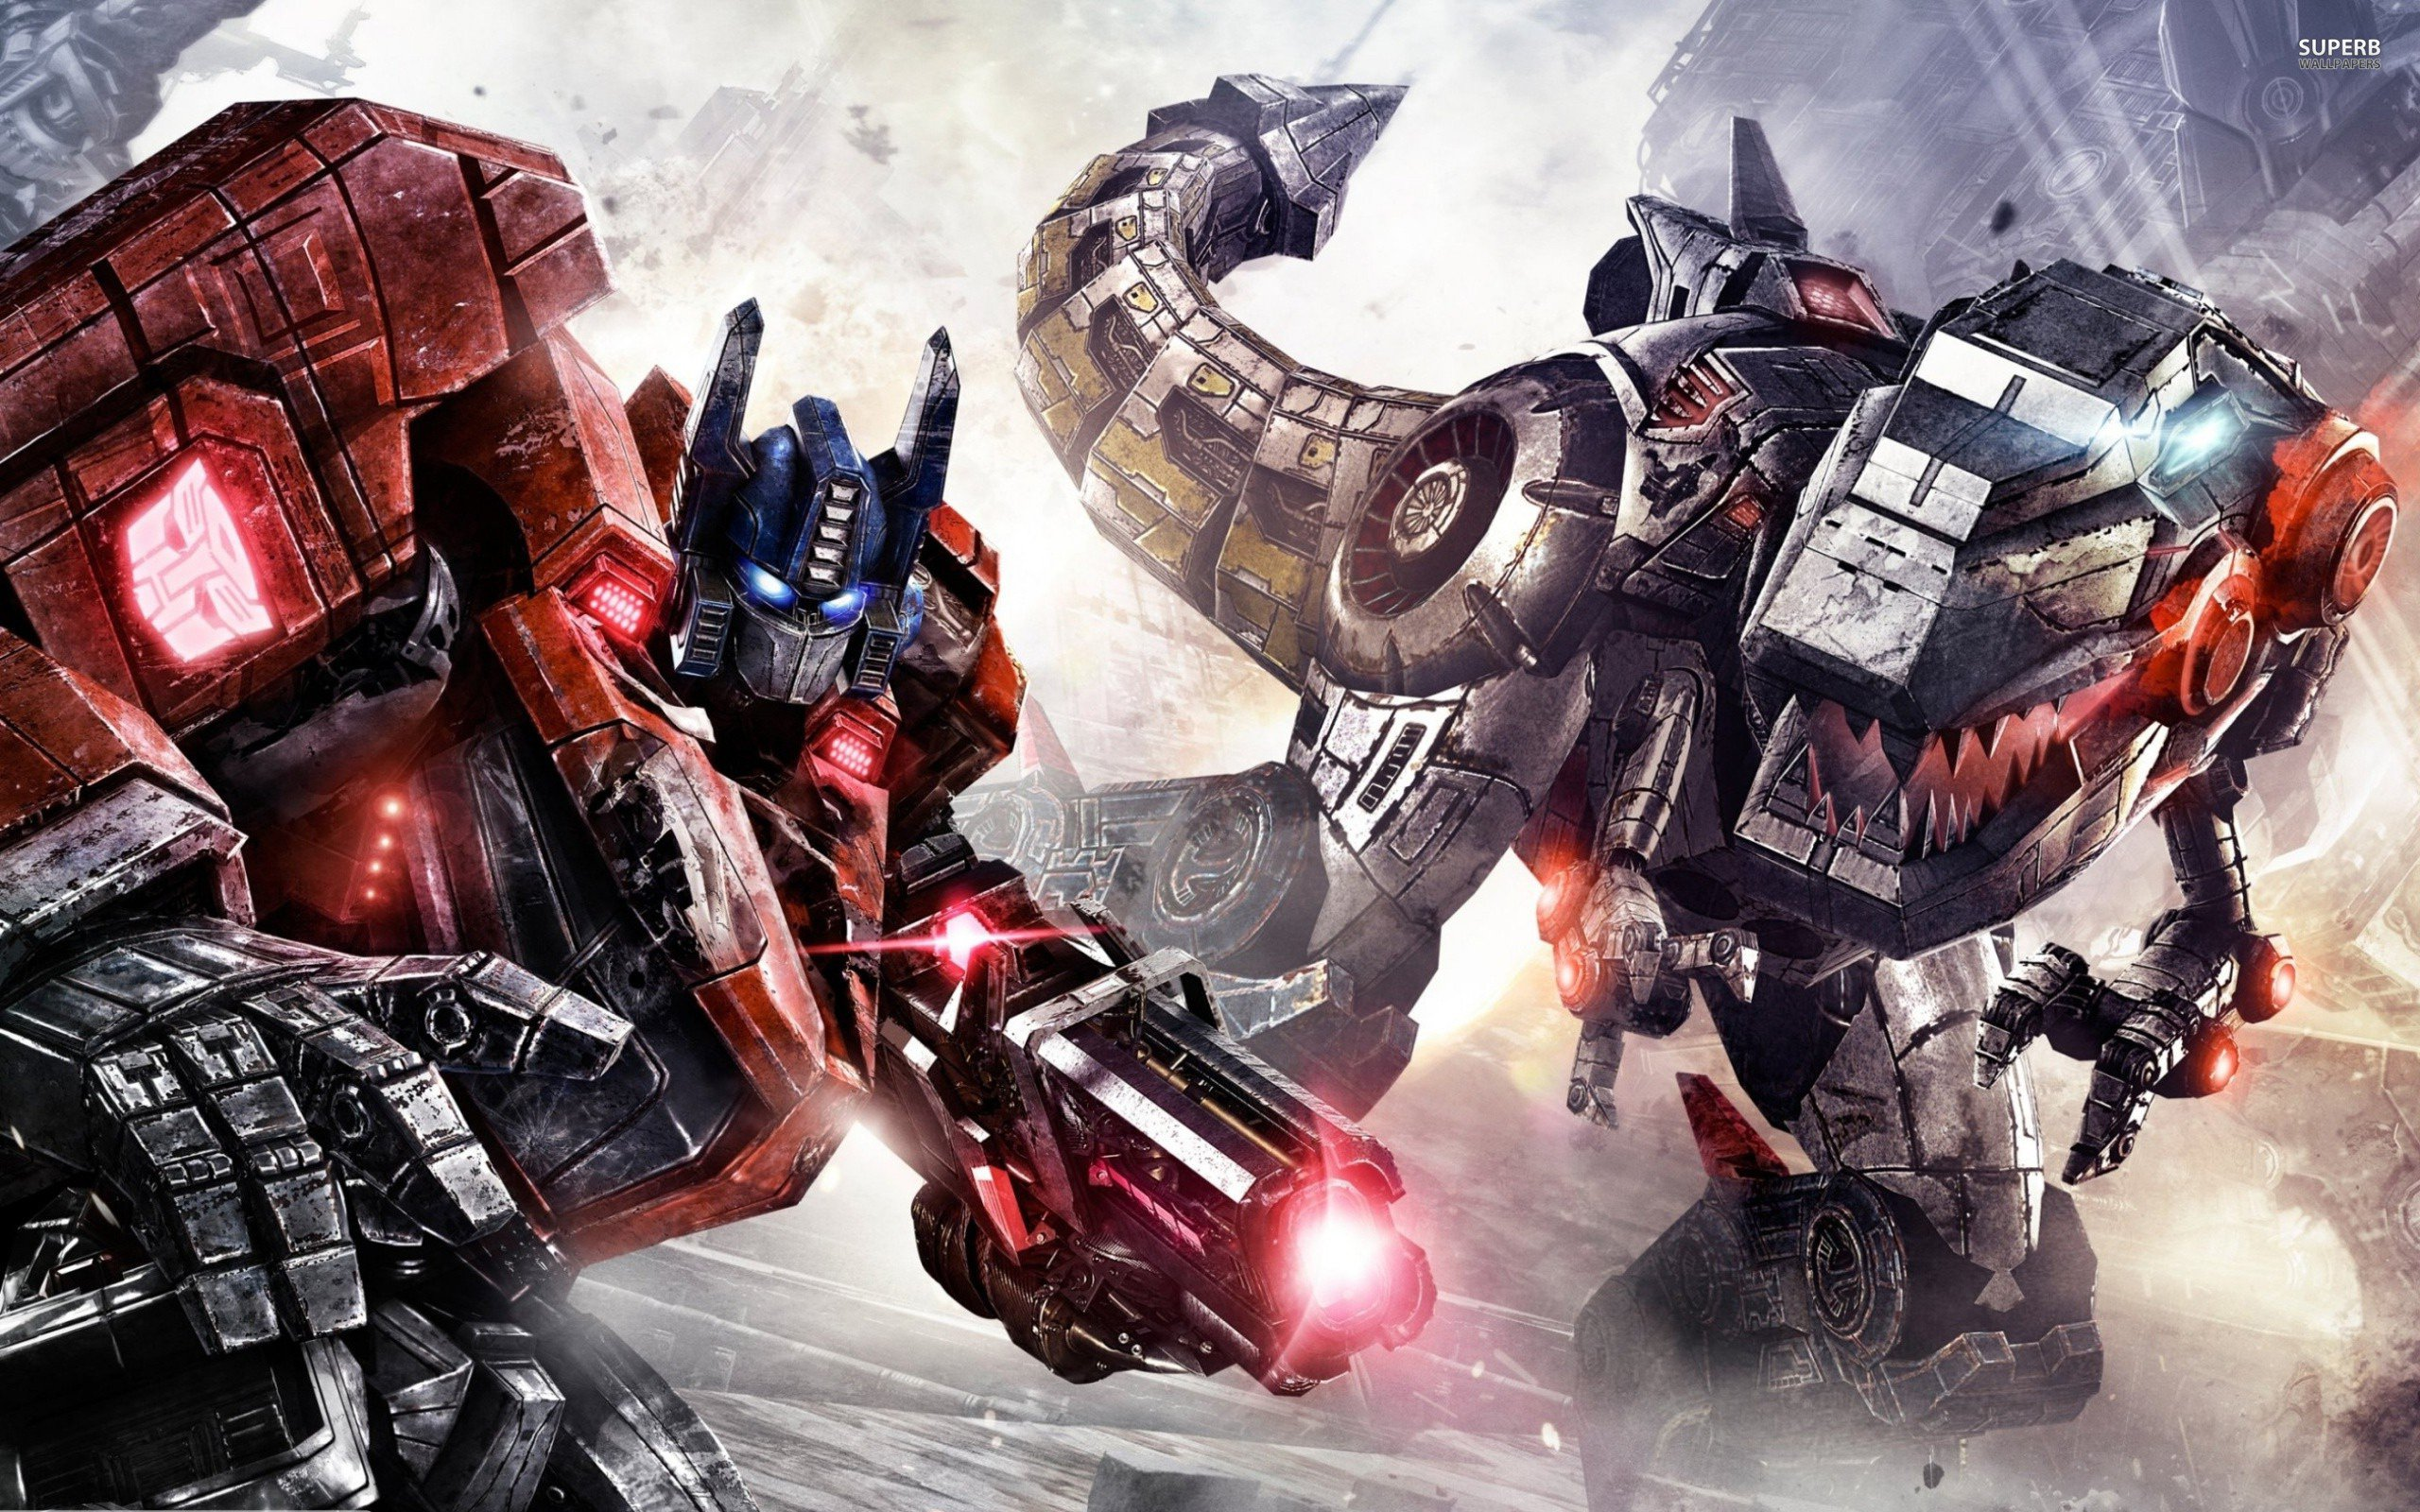 transformers fall of cybertron launches out of nowhere on ps4